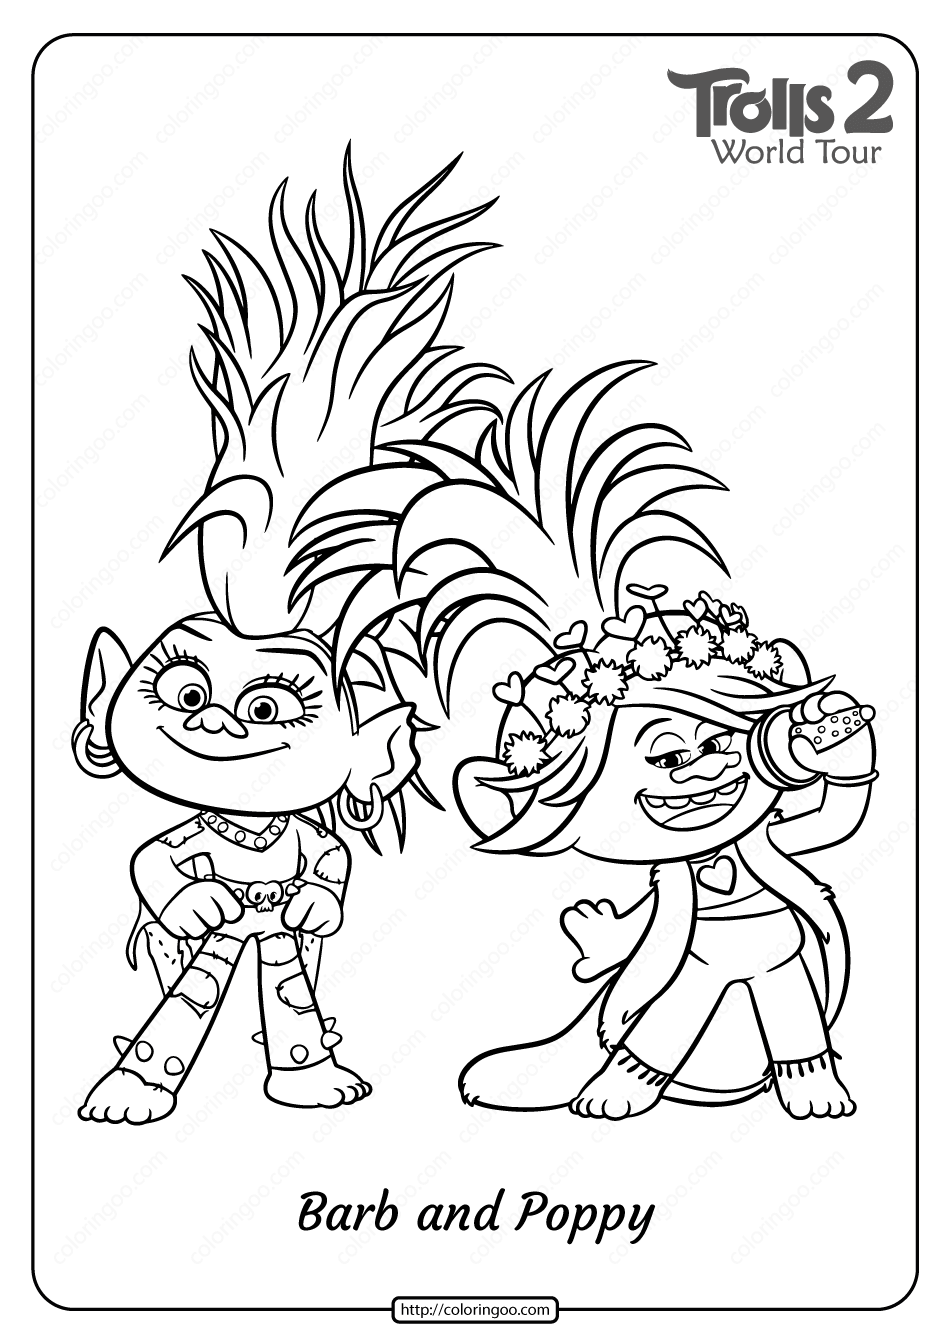 Printable Trolls 2 Barb and Poppy Pdf Coloring Page